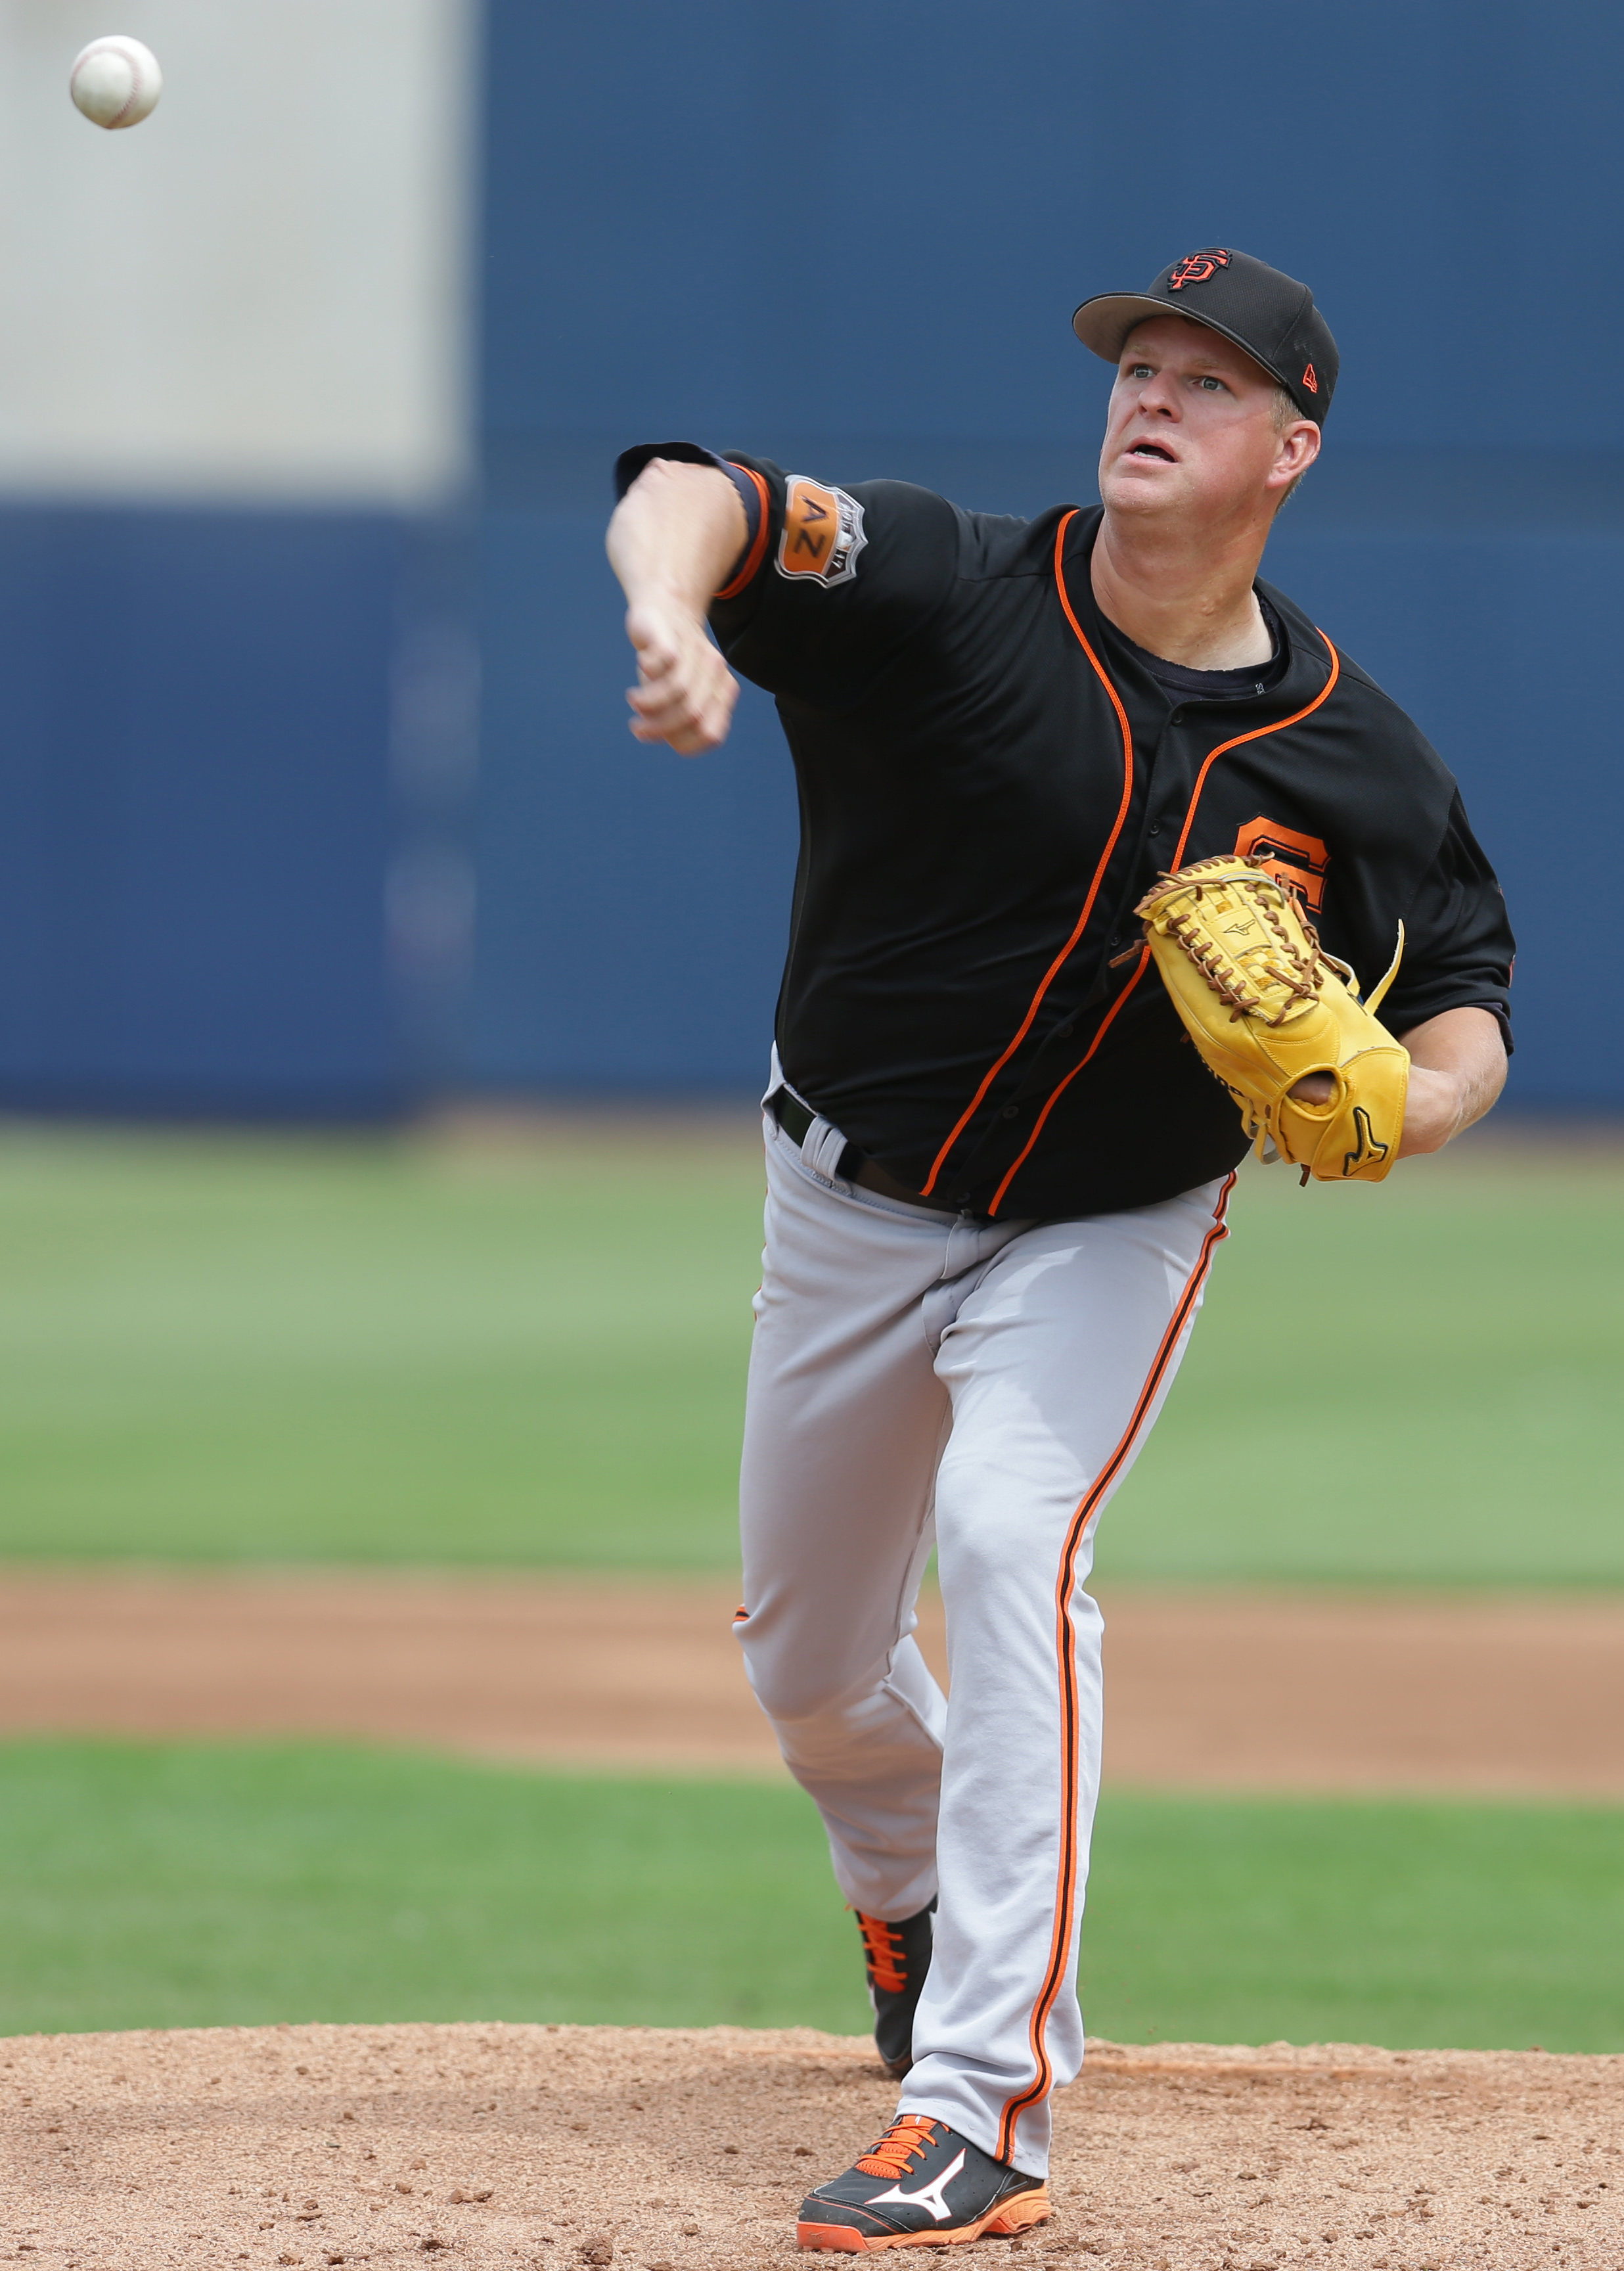 9964932-mlb-spring-training-san-francisco-giants-at-milwaukee-brewers